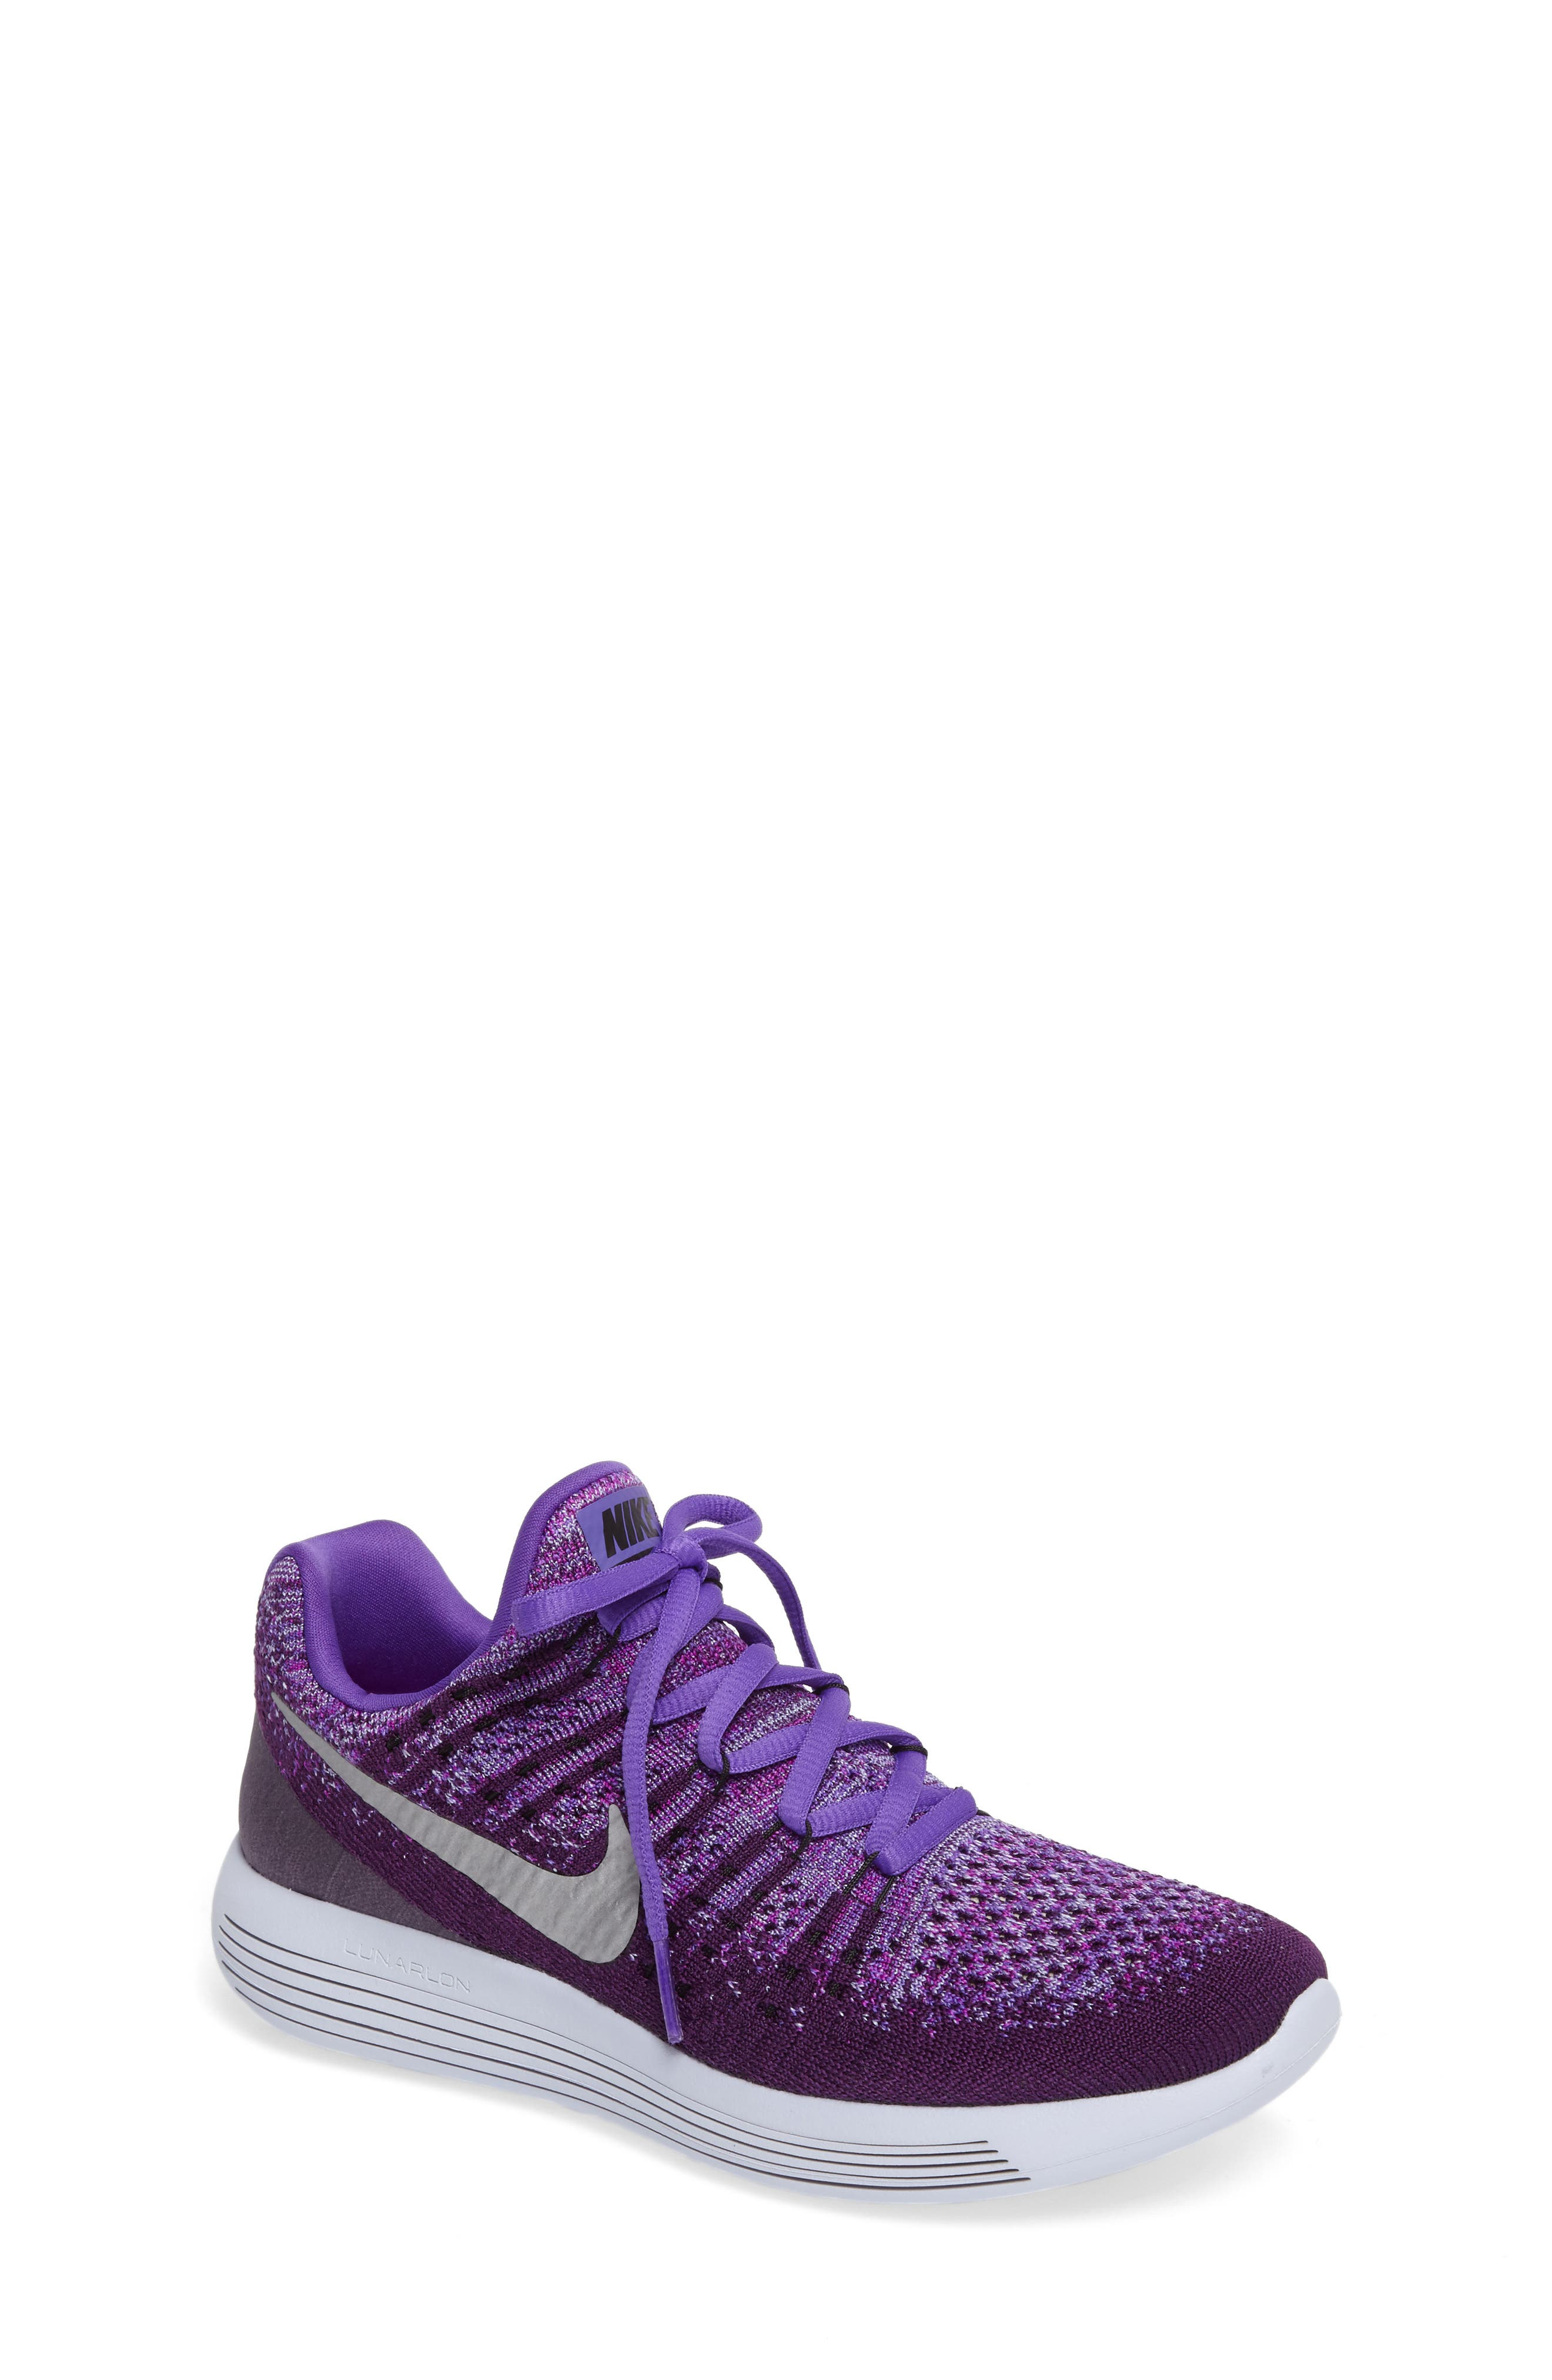 Main Image - Nike Flyknit LunarEpic Sneaker (Big Kid)